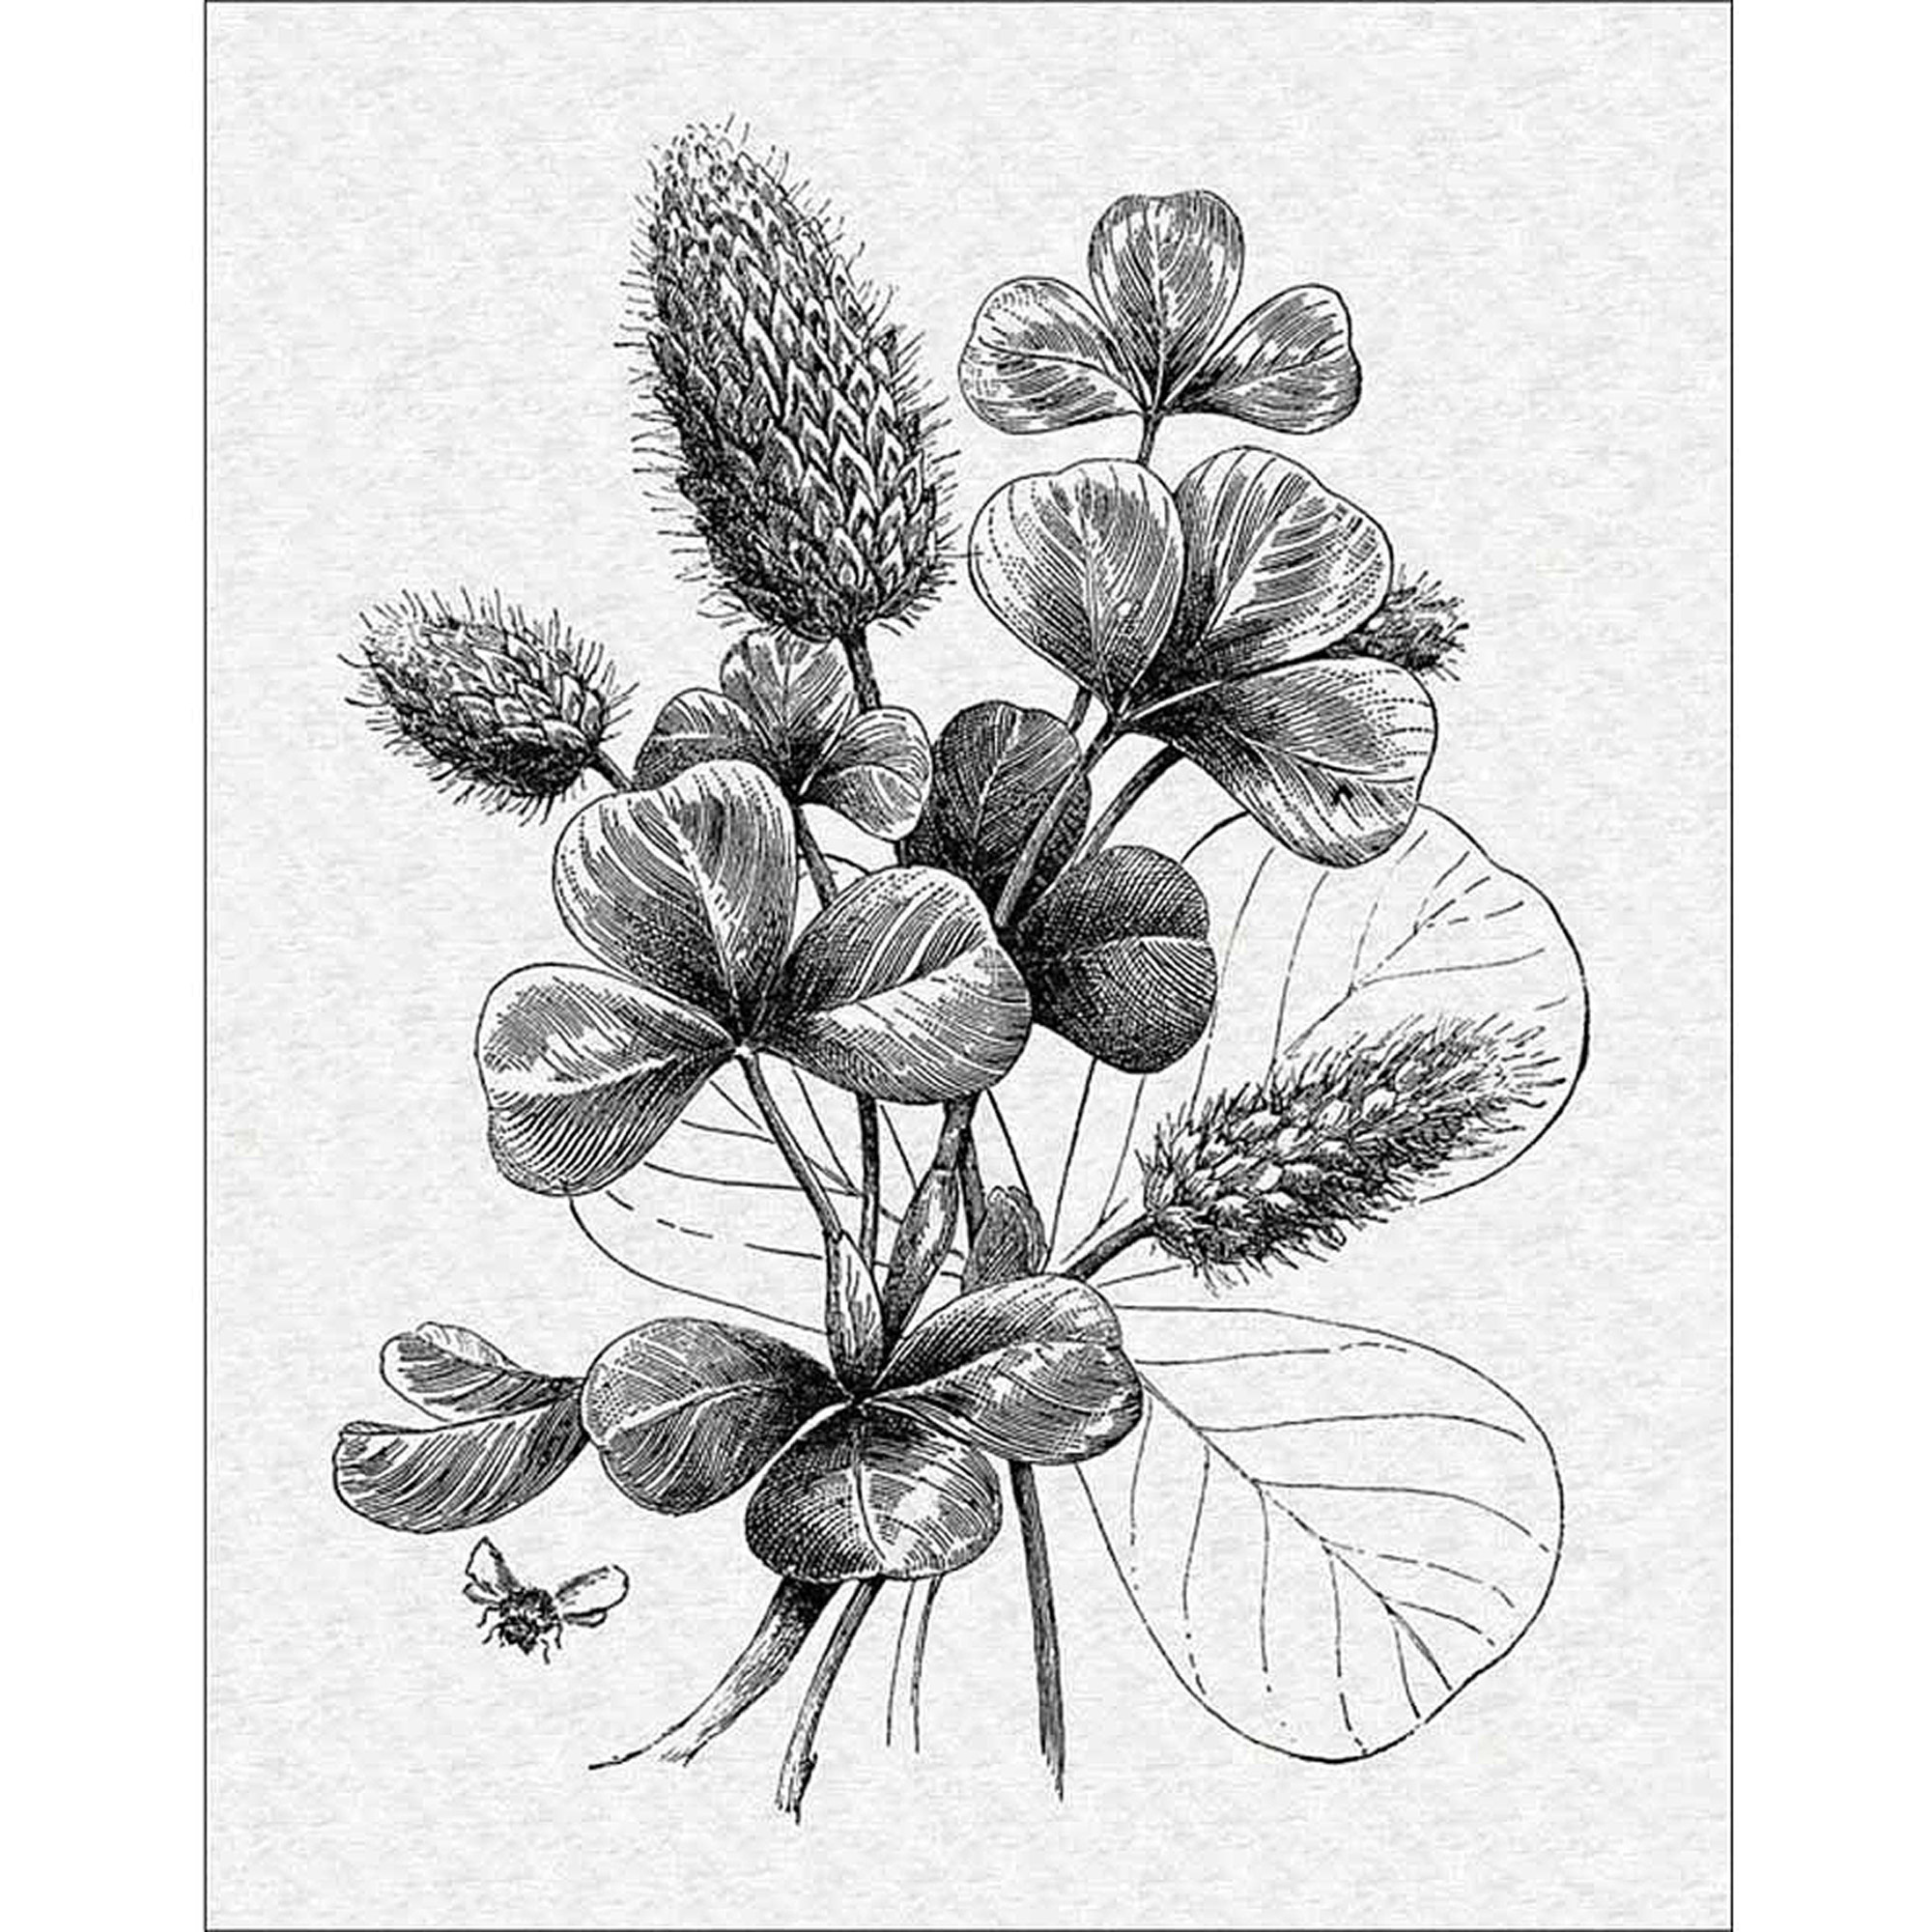 Vintage Clover Flower Engraving With Bees Black White Canvas Art